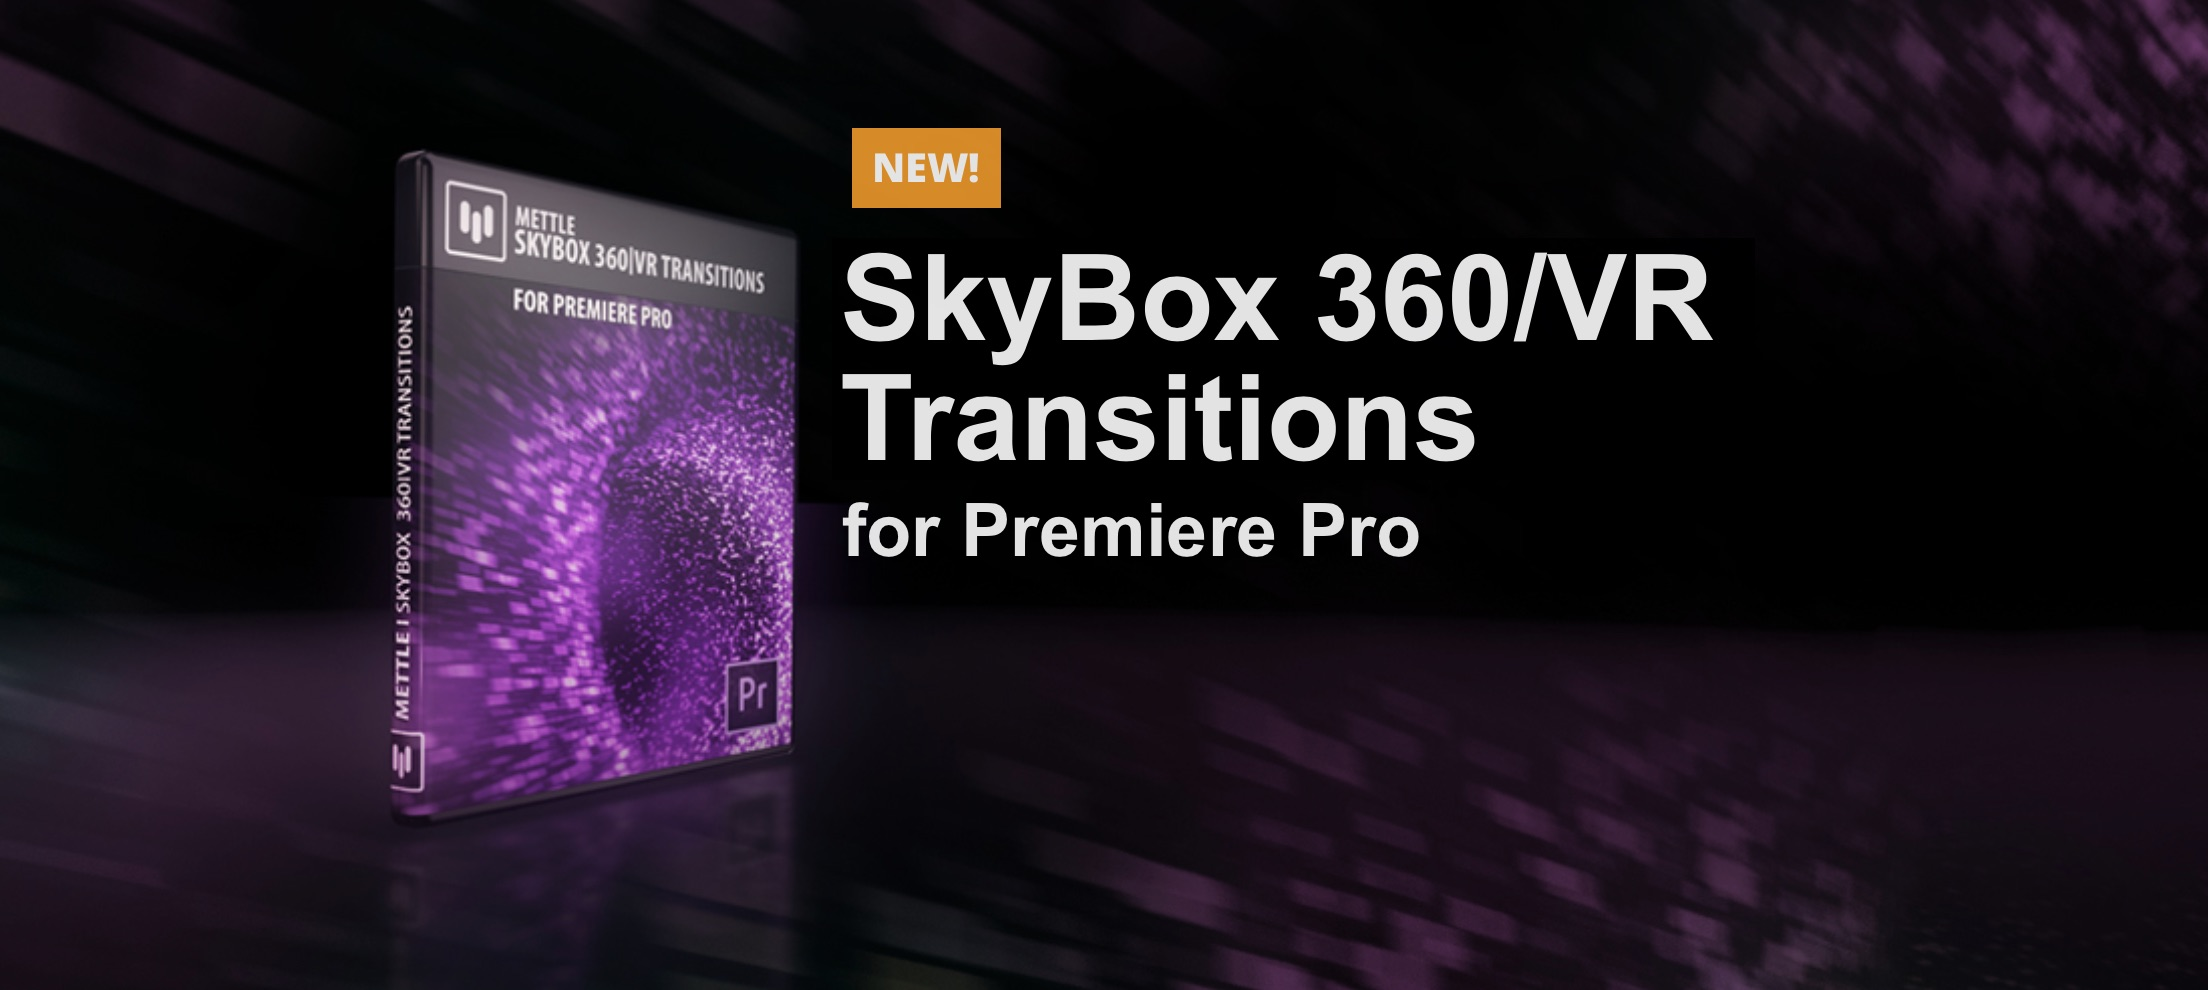 mettle-skybox-360-vr-transitions